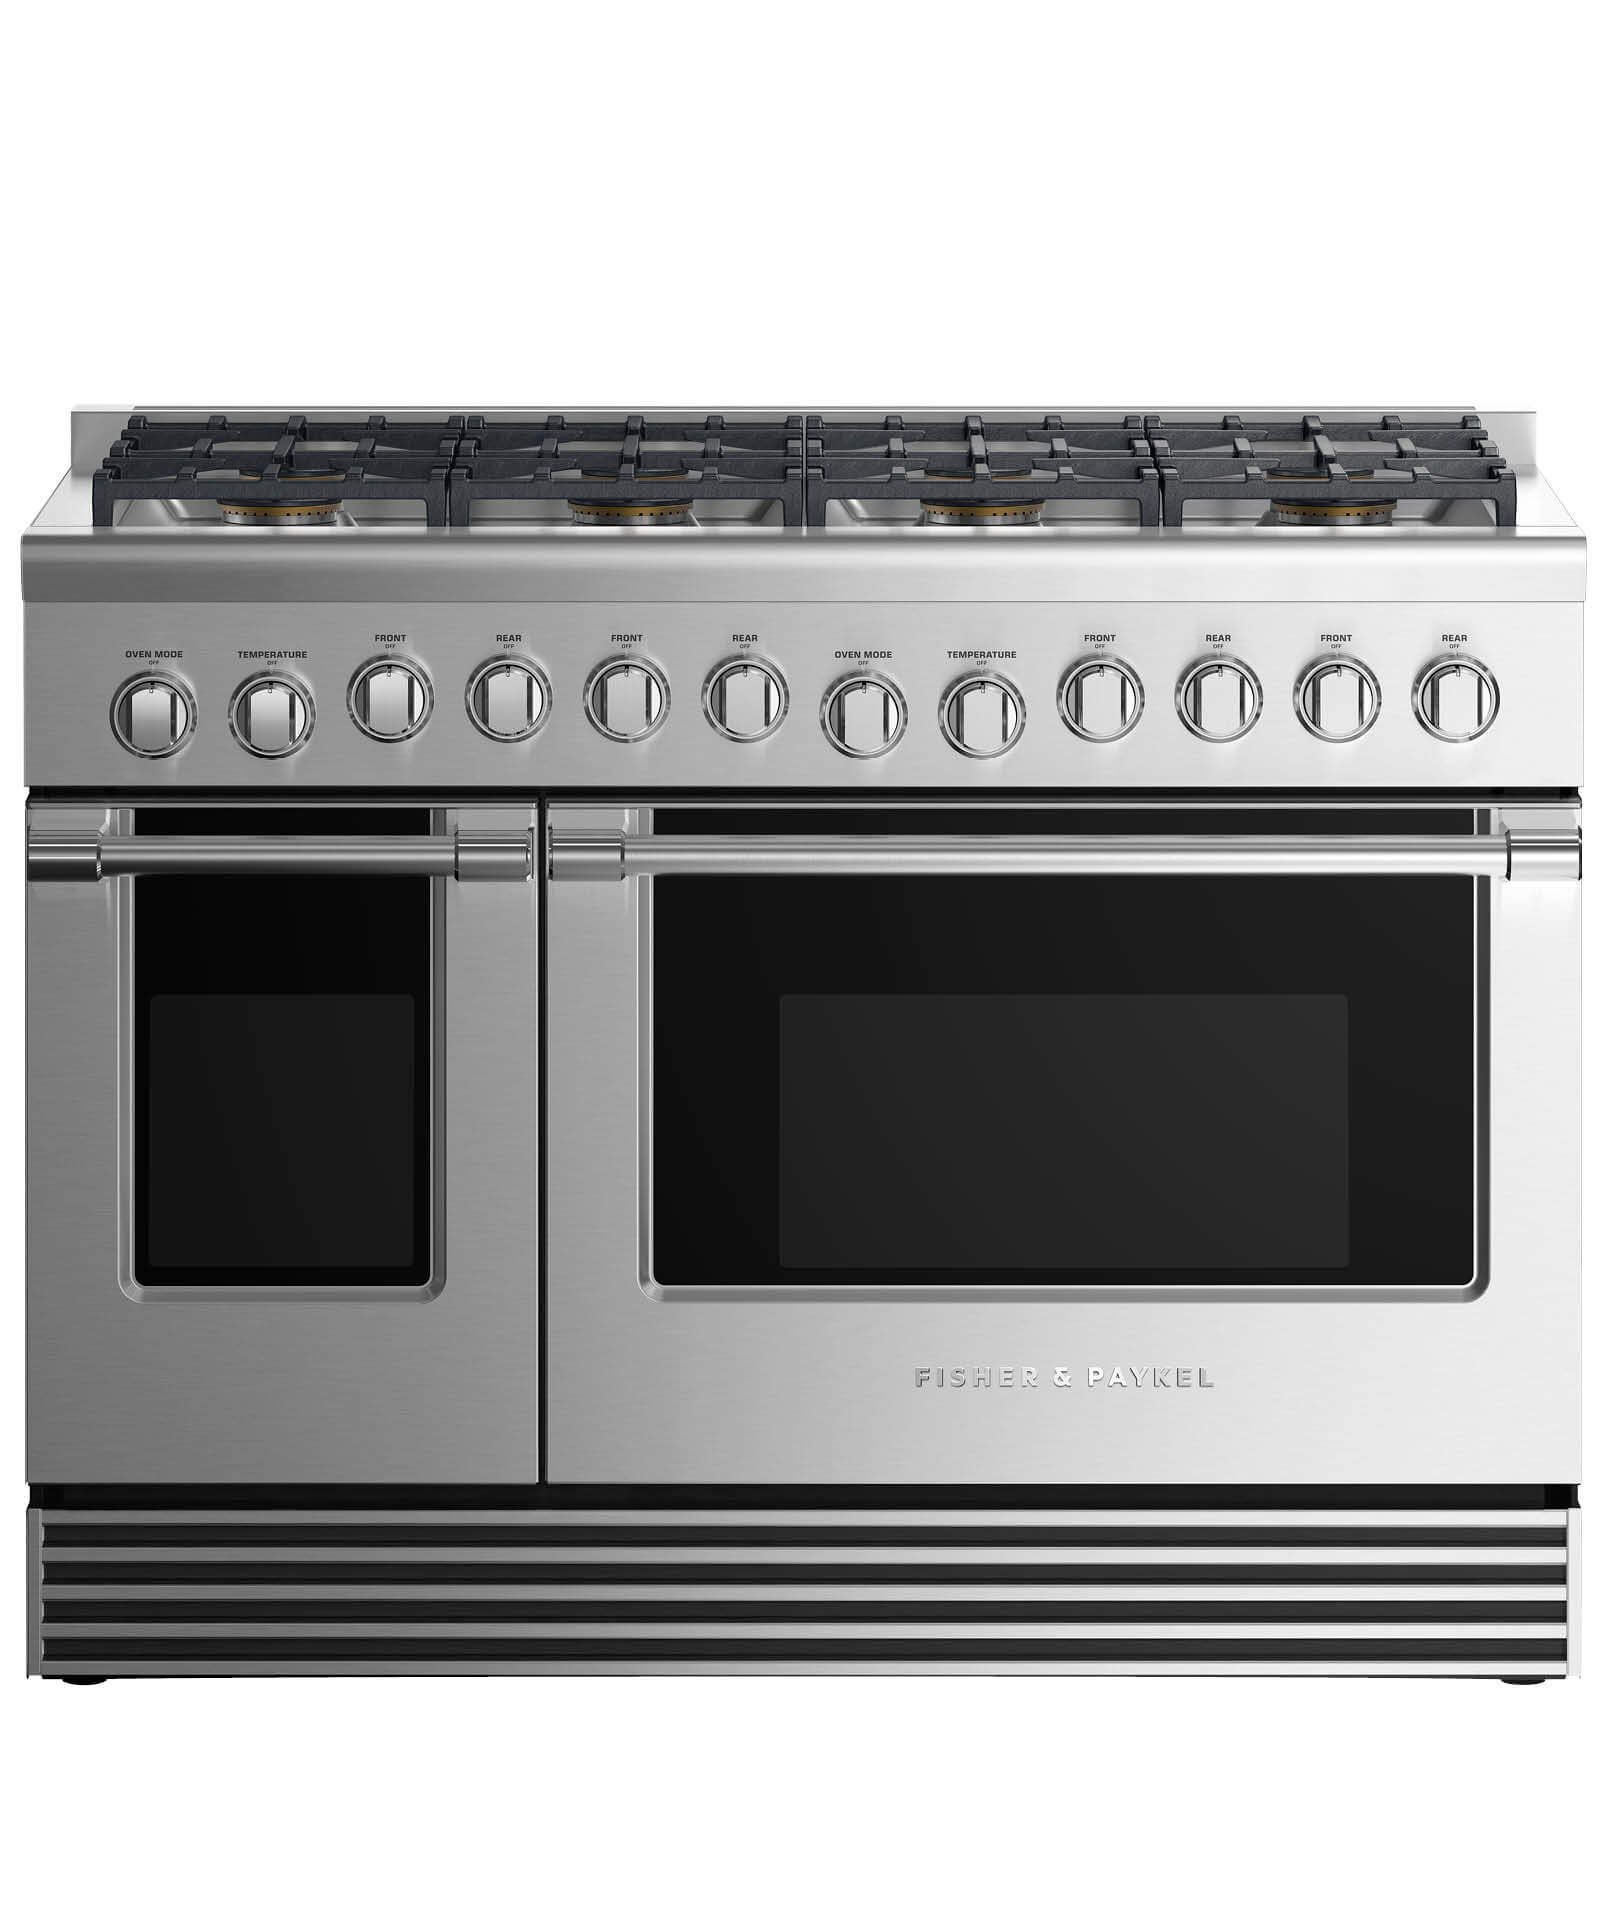 "Fisher and Paykel Gas Range 48"", 8 Burners (LPG)"